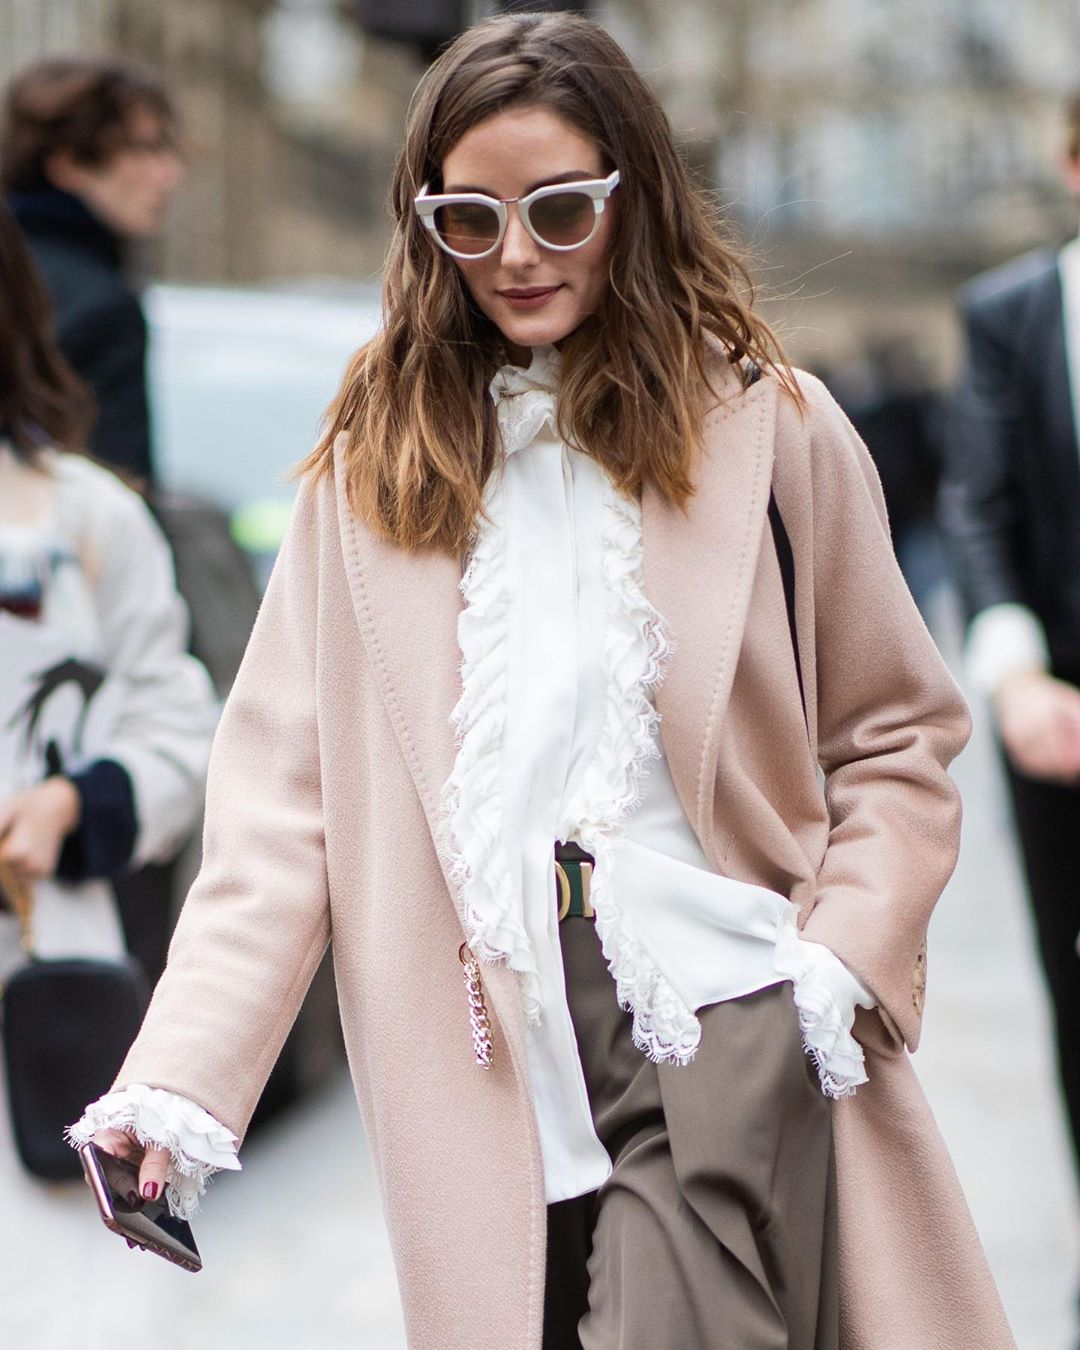 olivia-palermo in westward leaning seaspray 03 white and pink